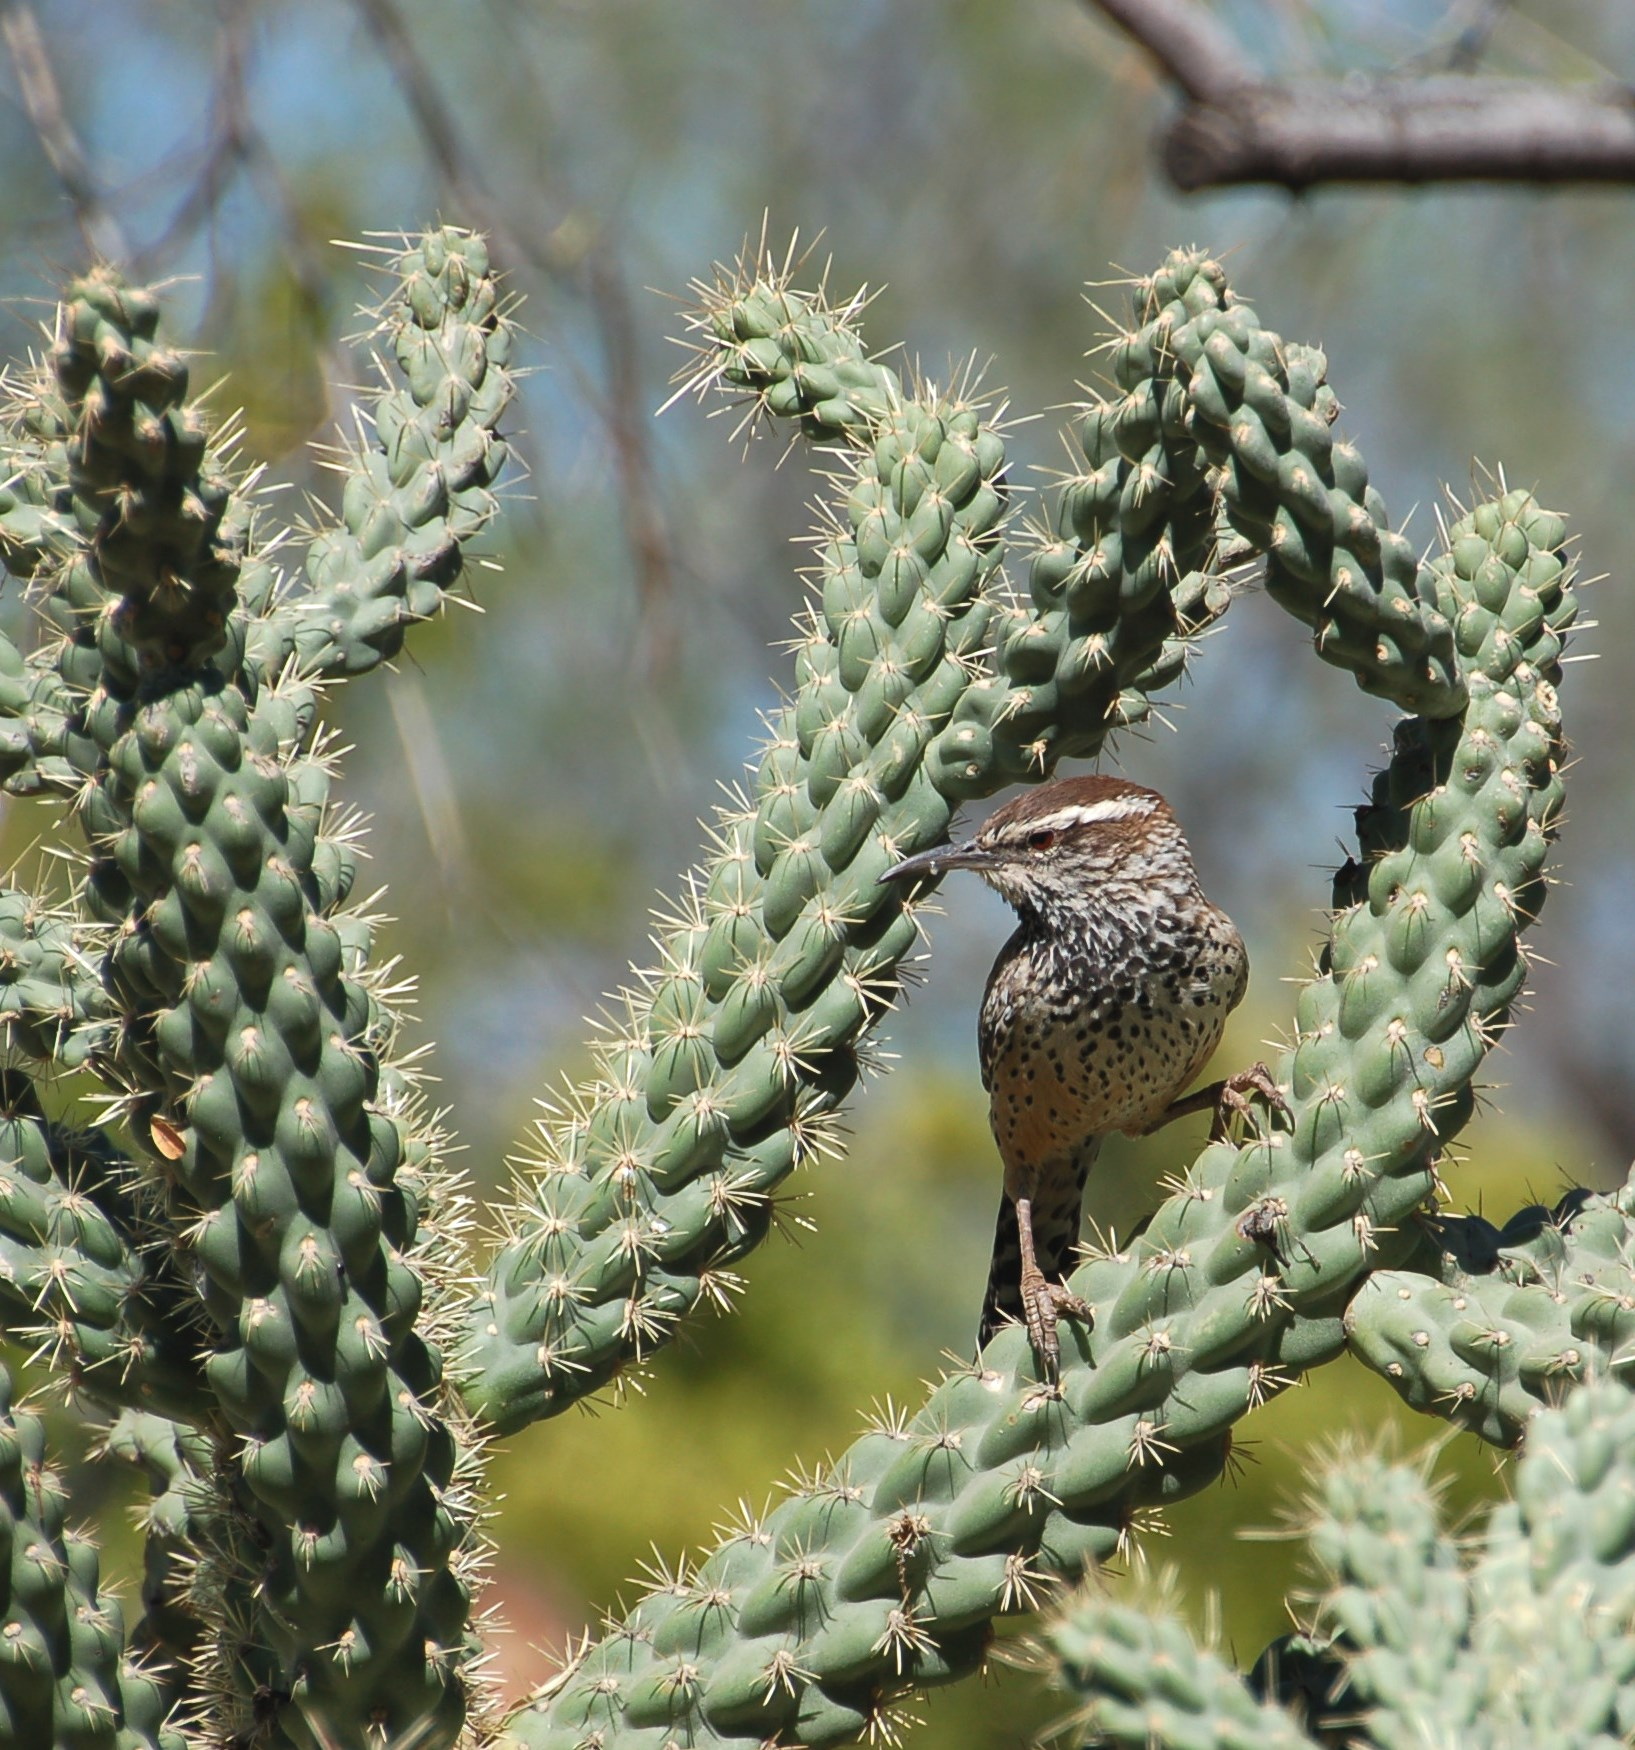 Cactus Wren, Arizona State Bird taken at the Botanical Garden